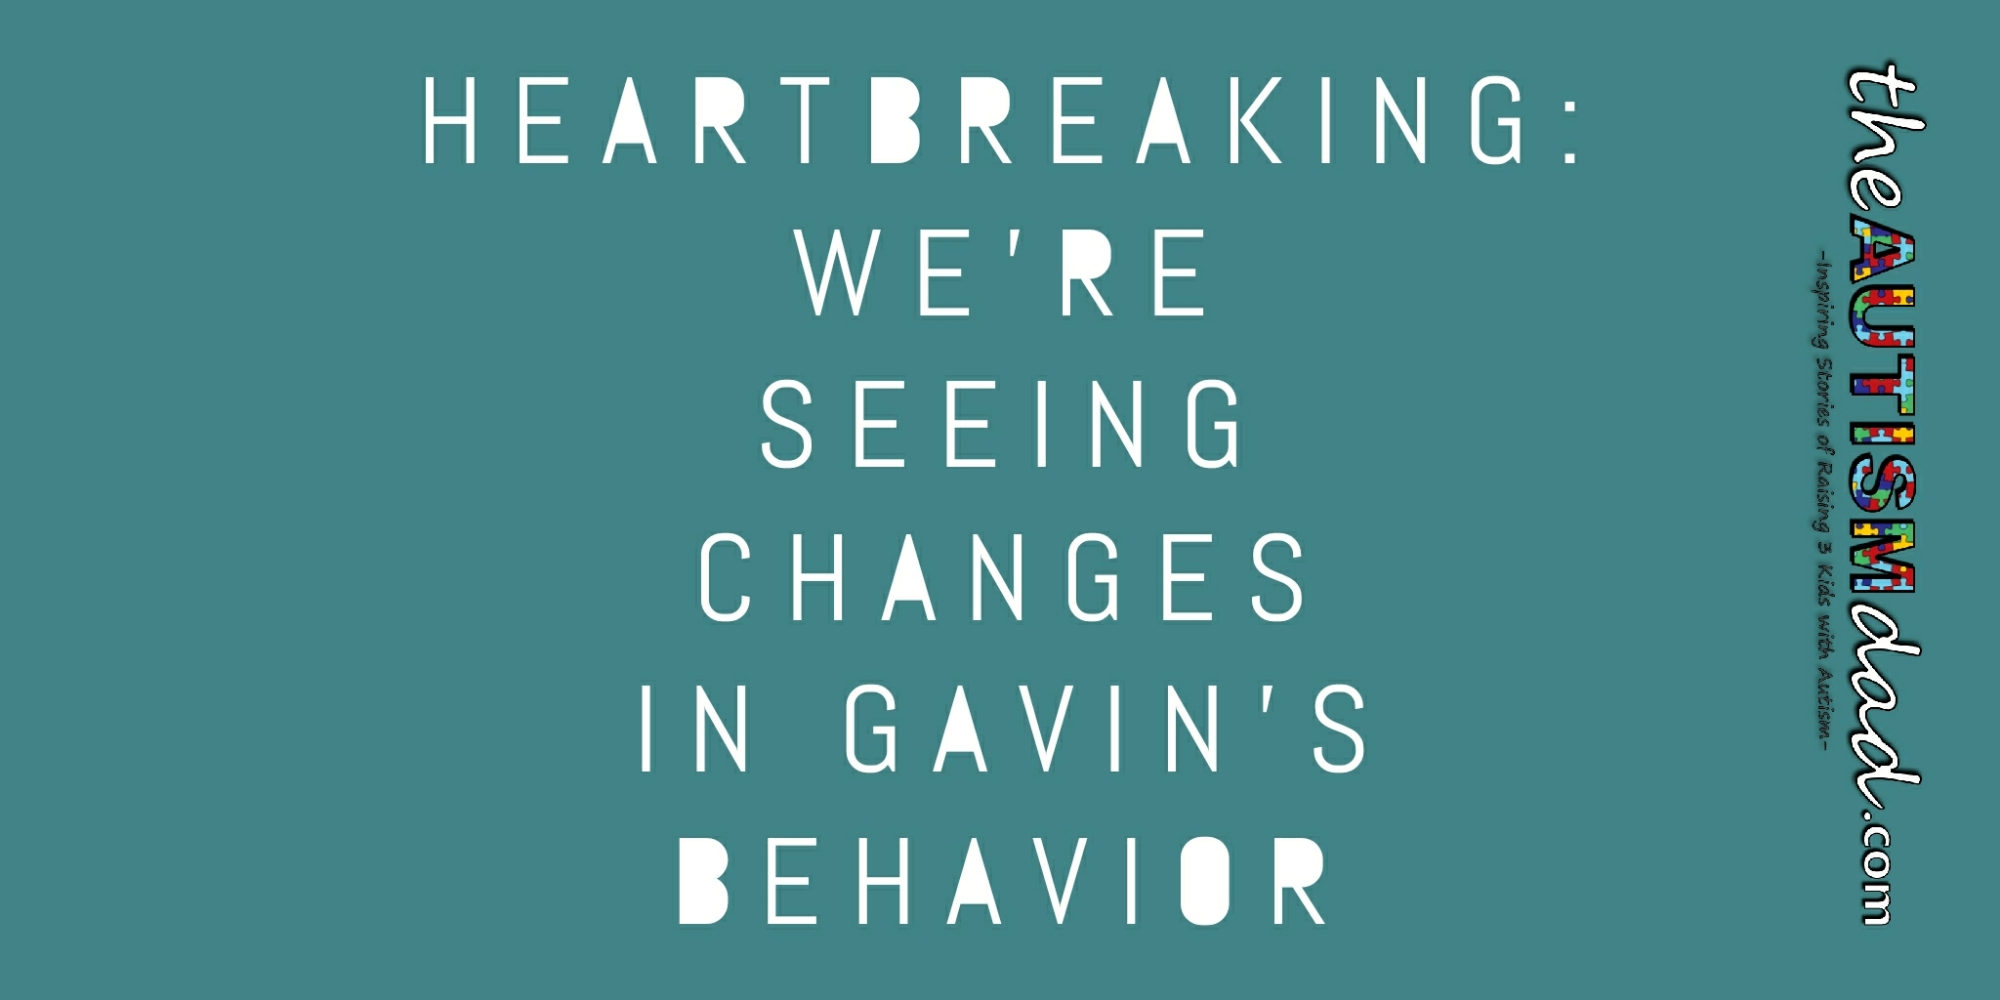 Heartbreaking: We're seeing changes in Gavin's behavior